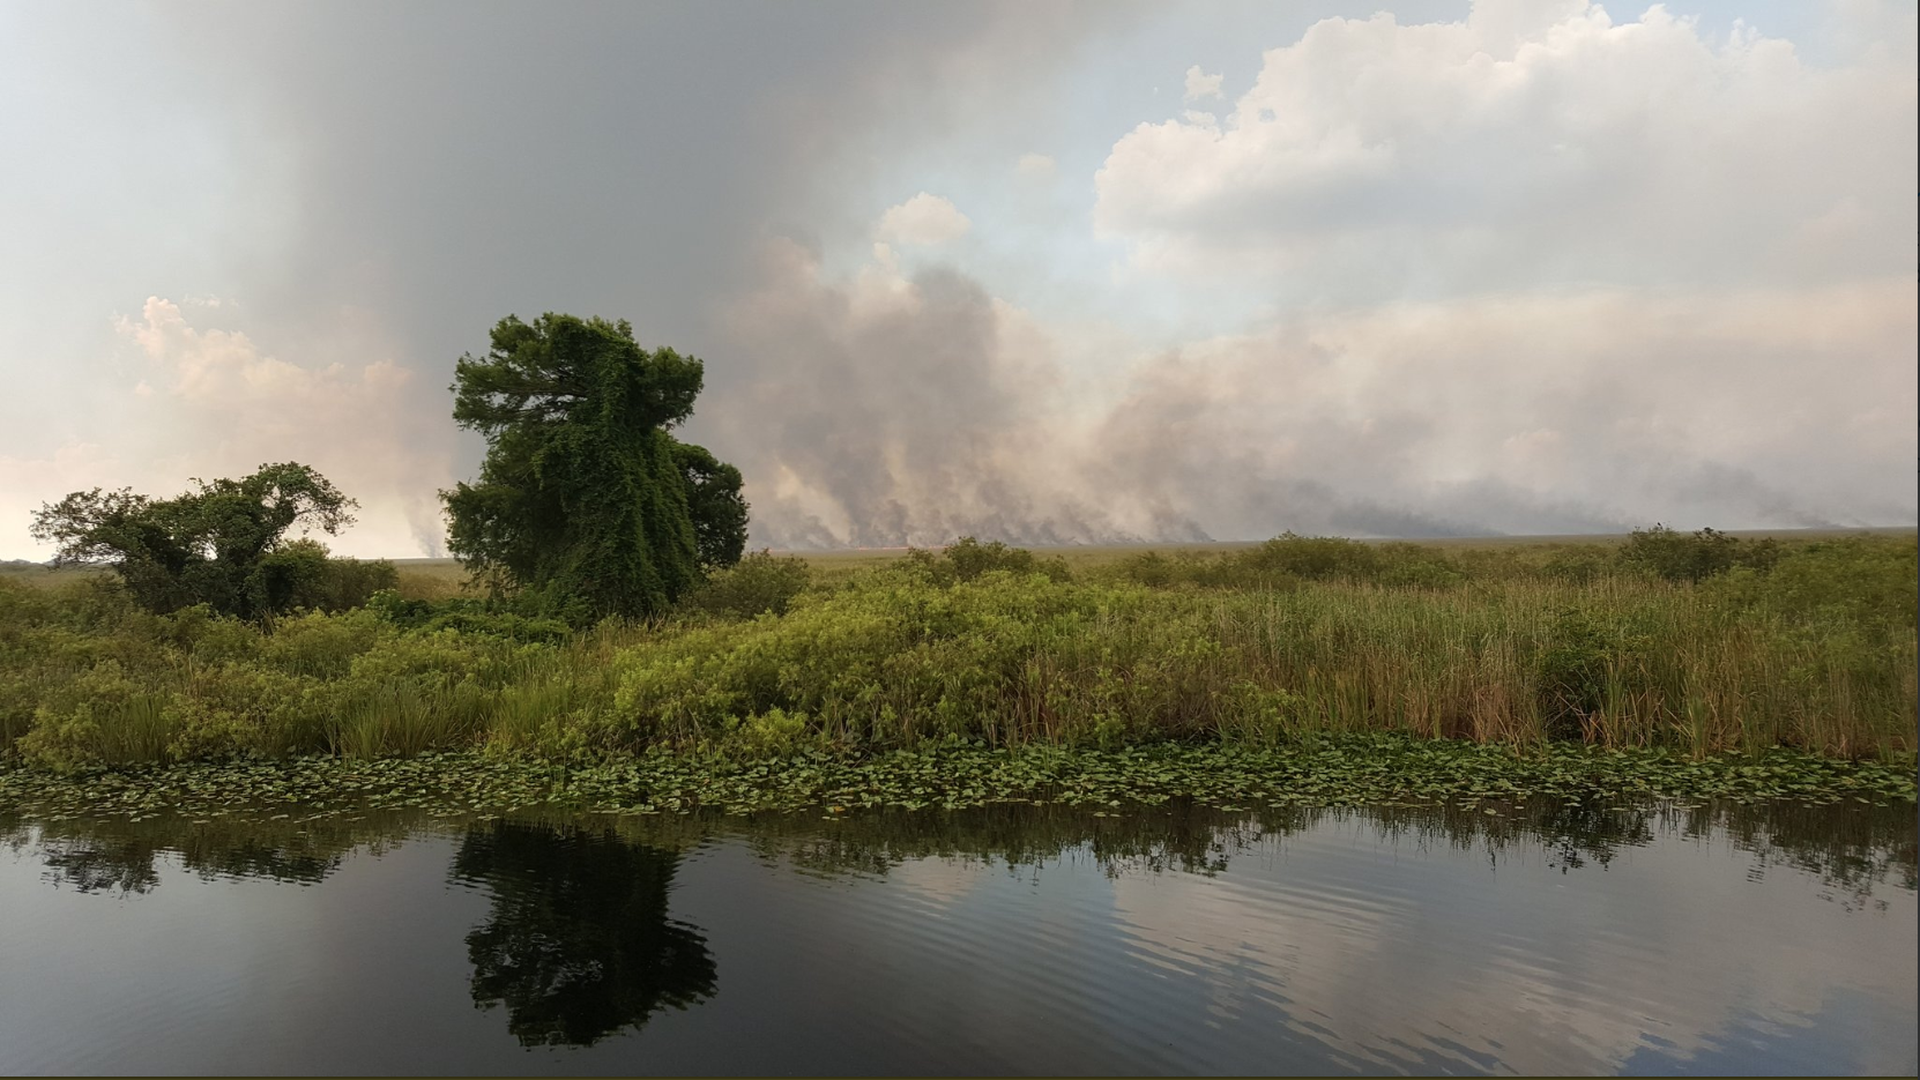 A  Florida Forest Service picture of the Everglades fire.